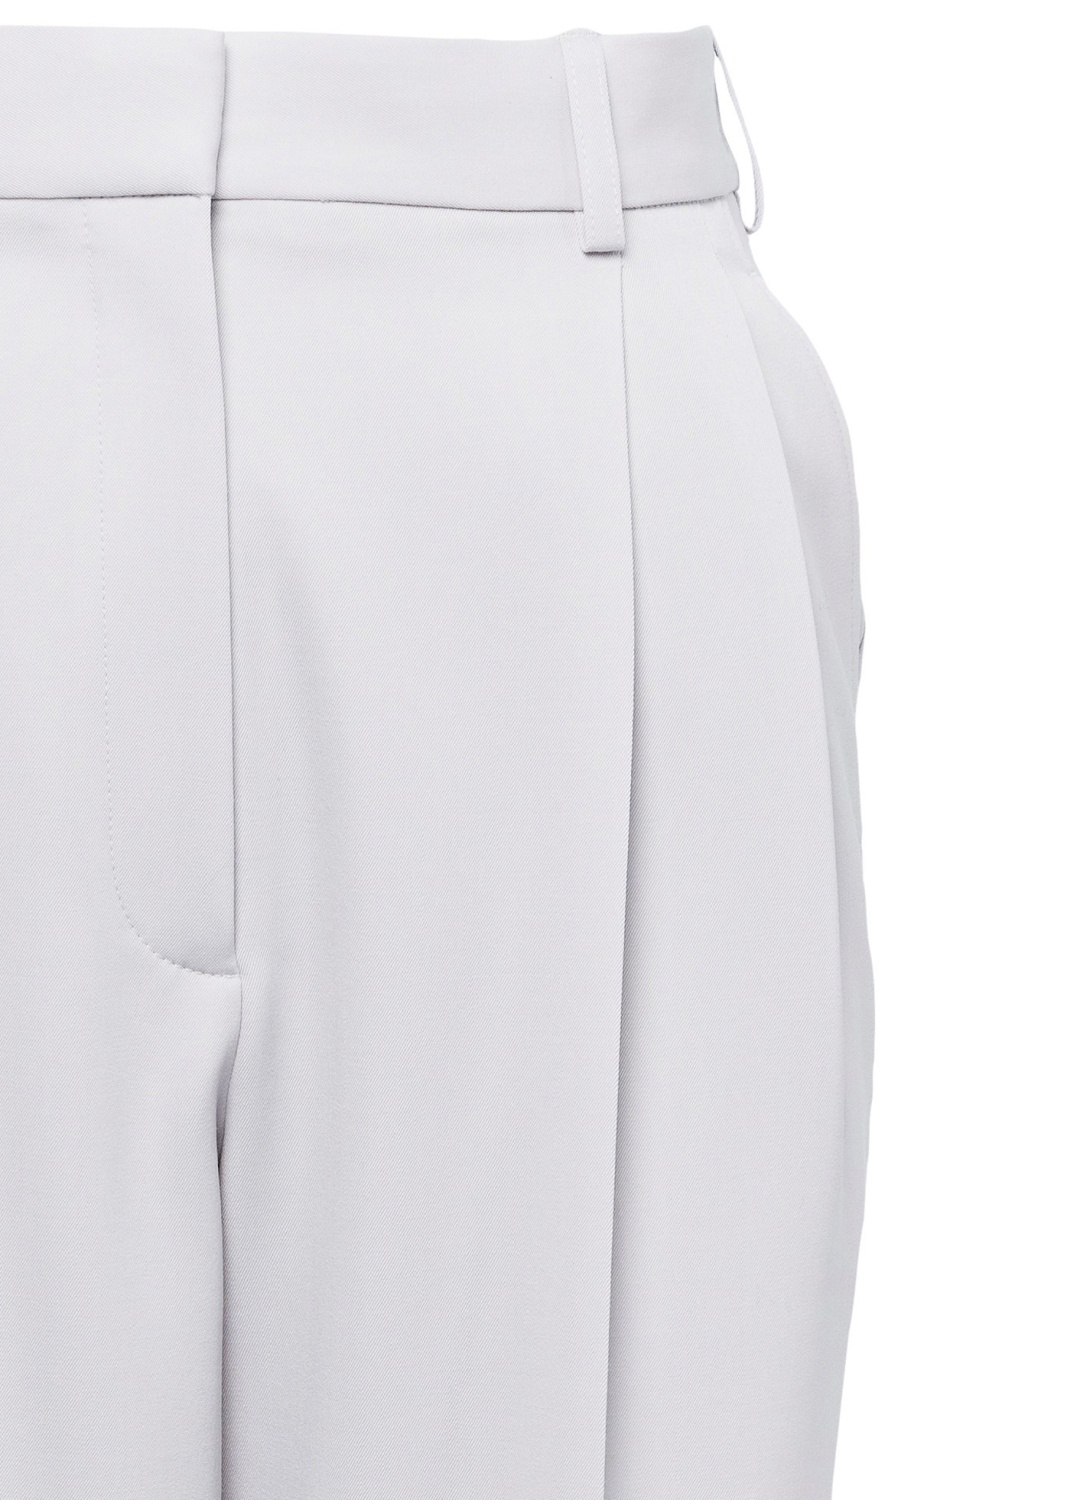 Louise Trouser Wool Twill Tailoring image number 2